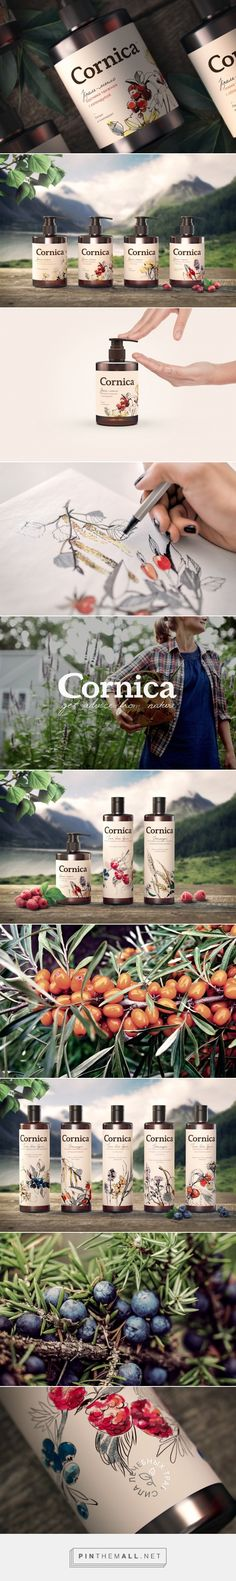 Natural Cosmetic Cornica -  Packaging of the World - Creative Package Design Gallery - http://www.packagingoftheworld.com/2016/04/natural-cosmetic-cornica.html